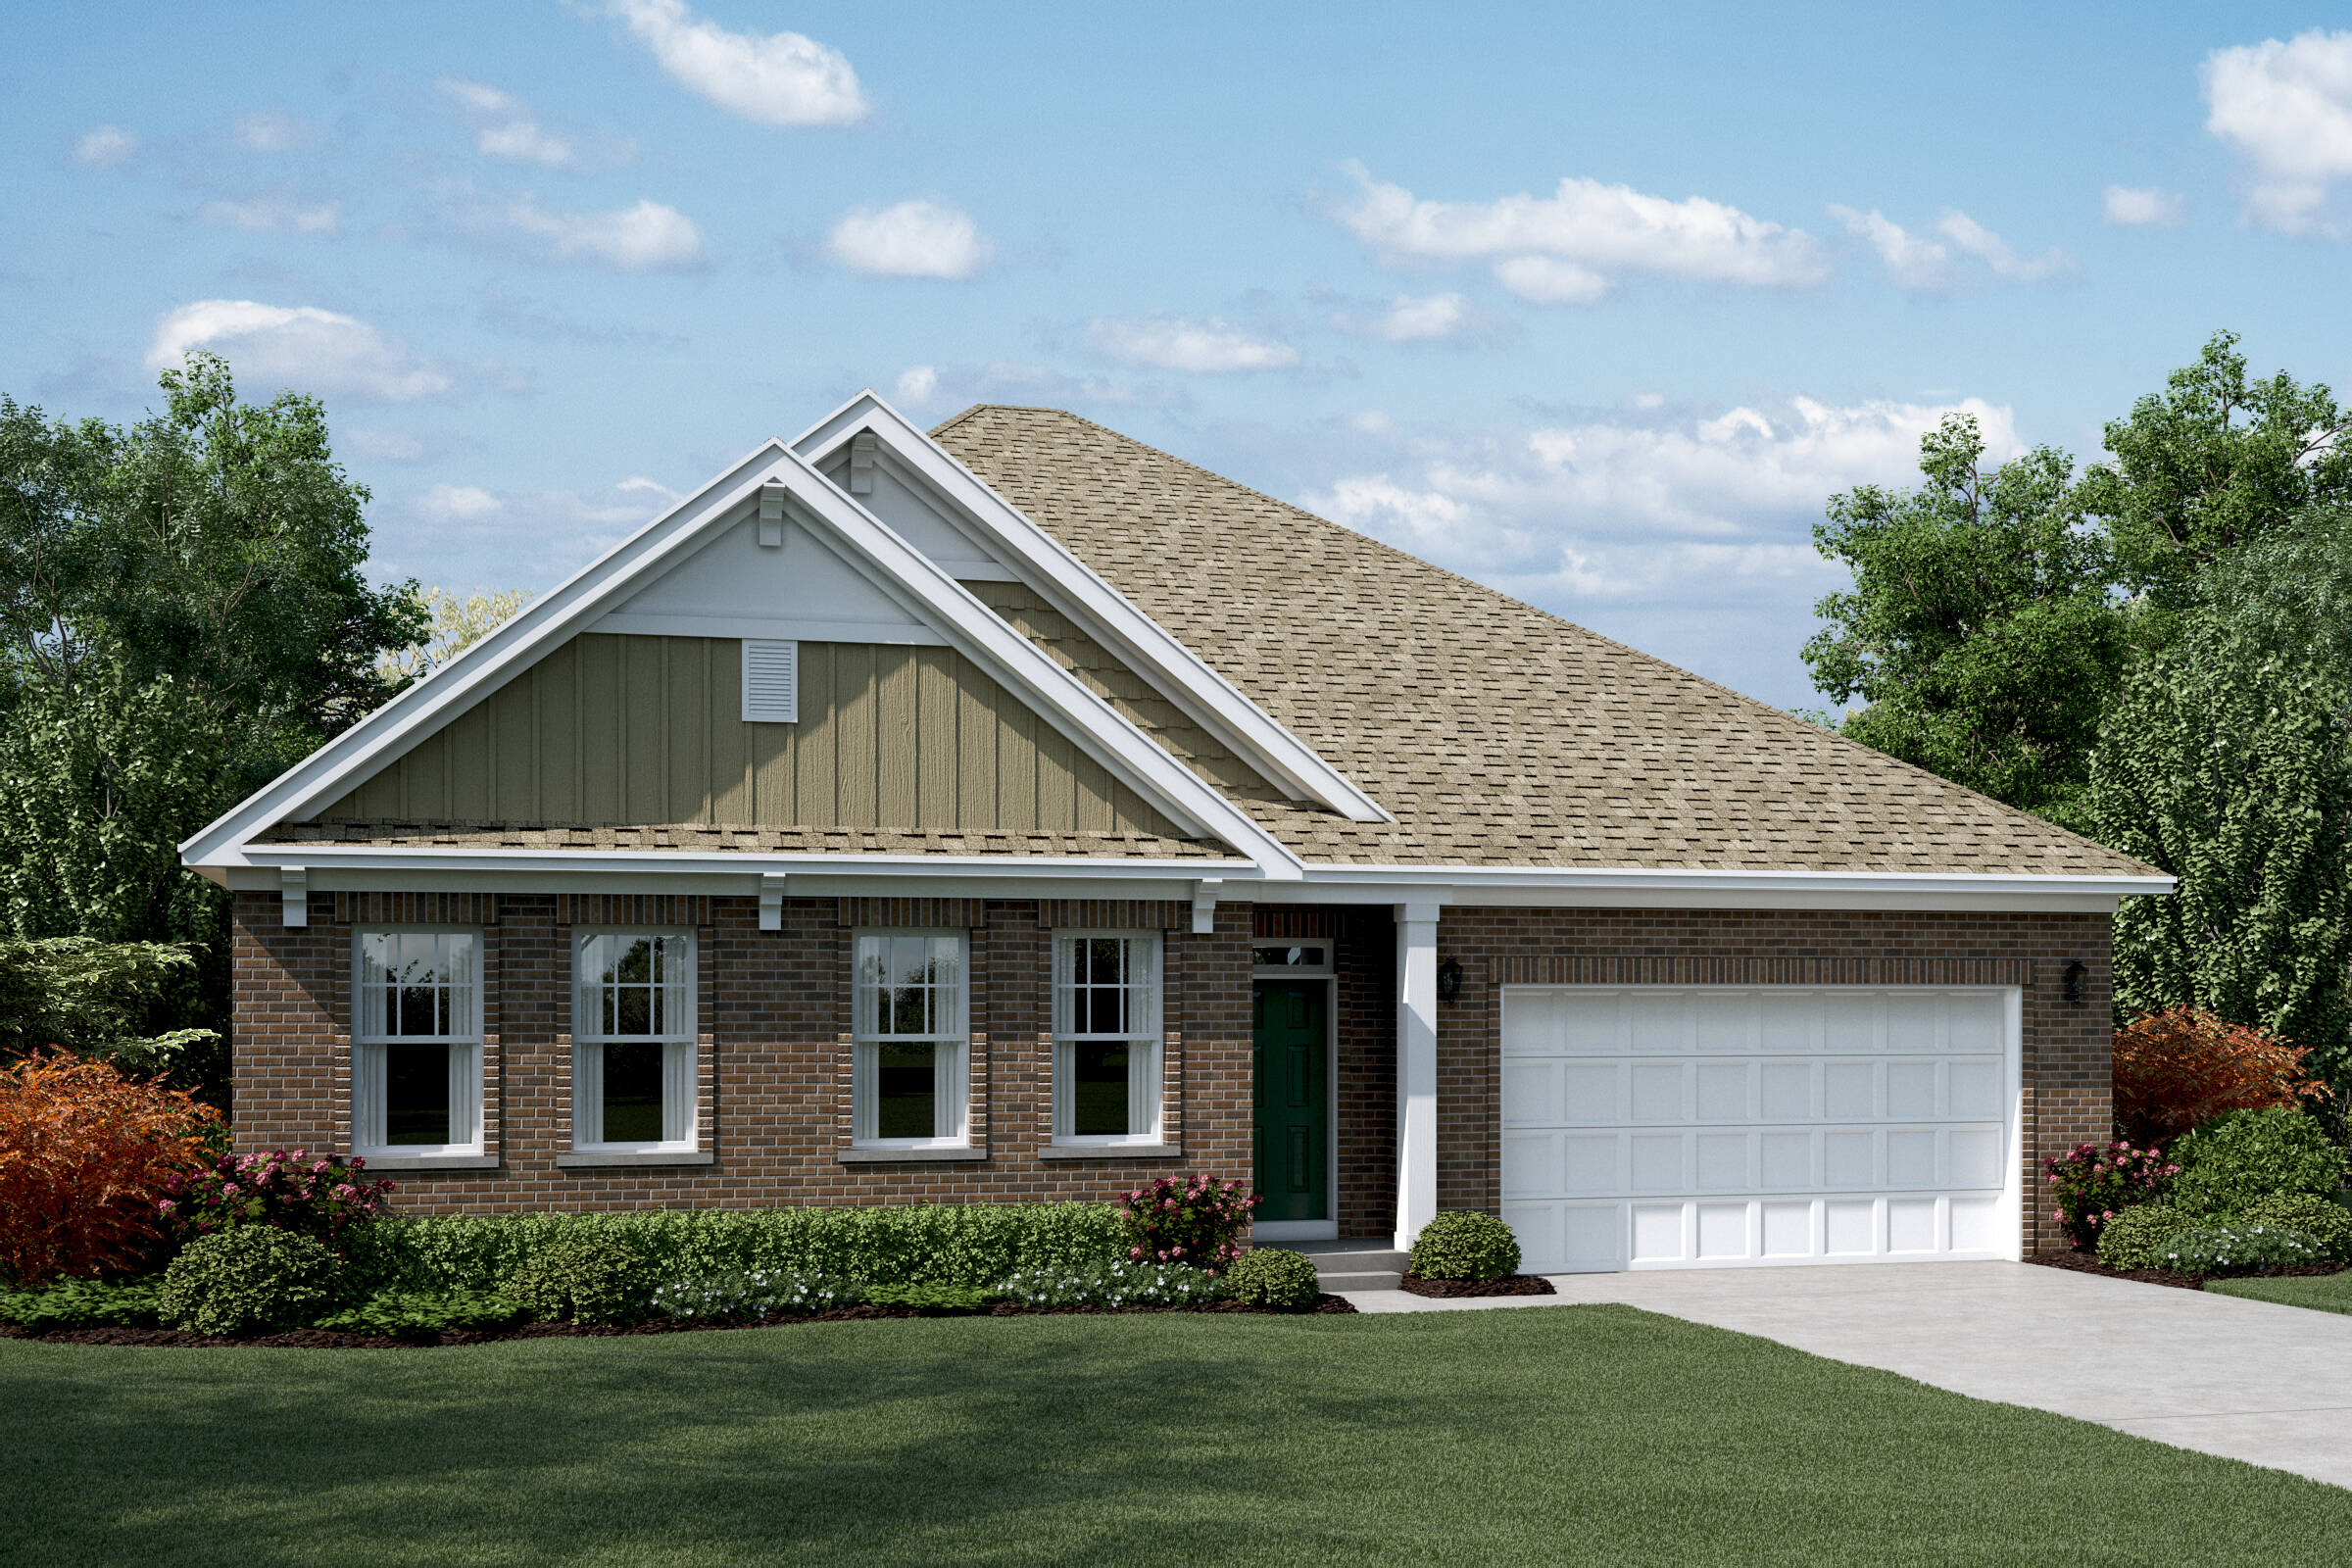 rosewood db brand new homes manhattan illinois